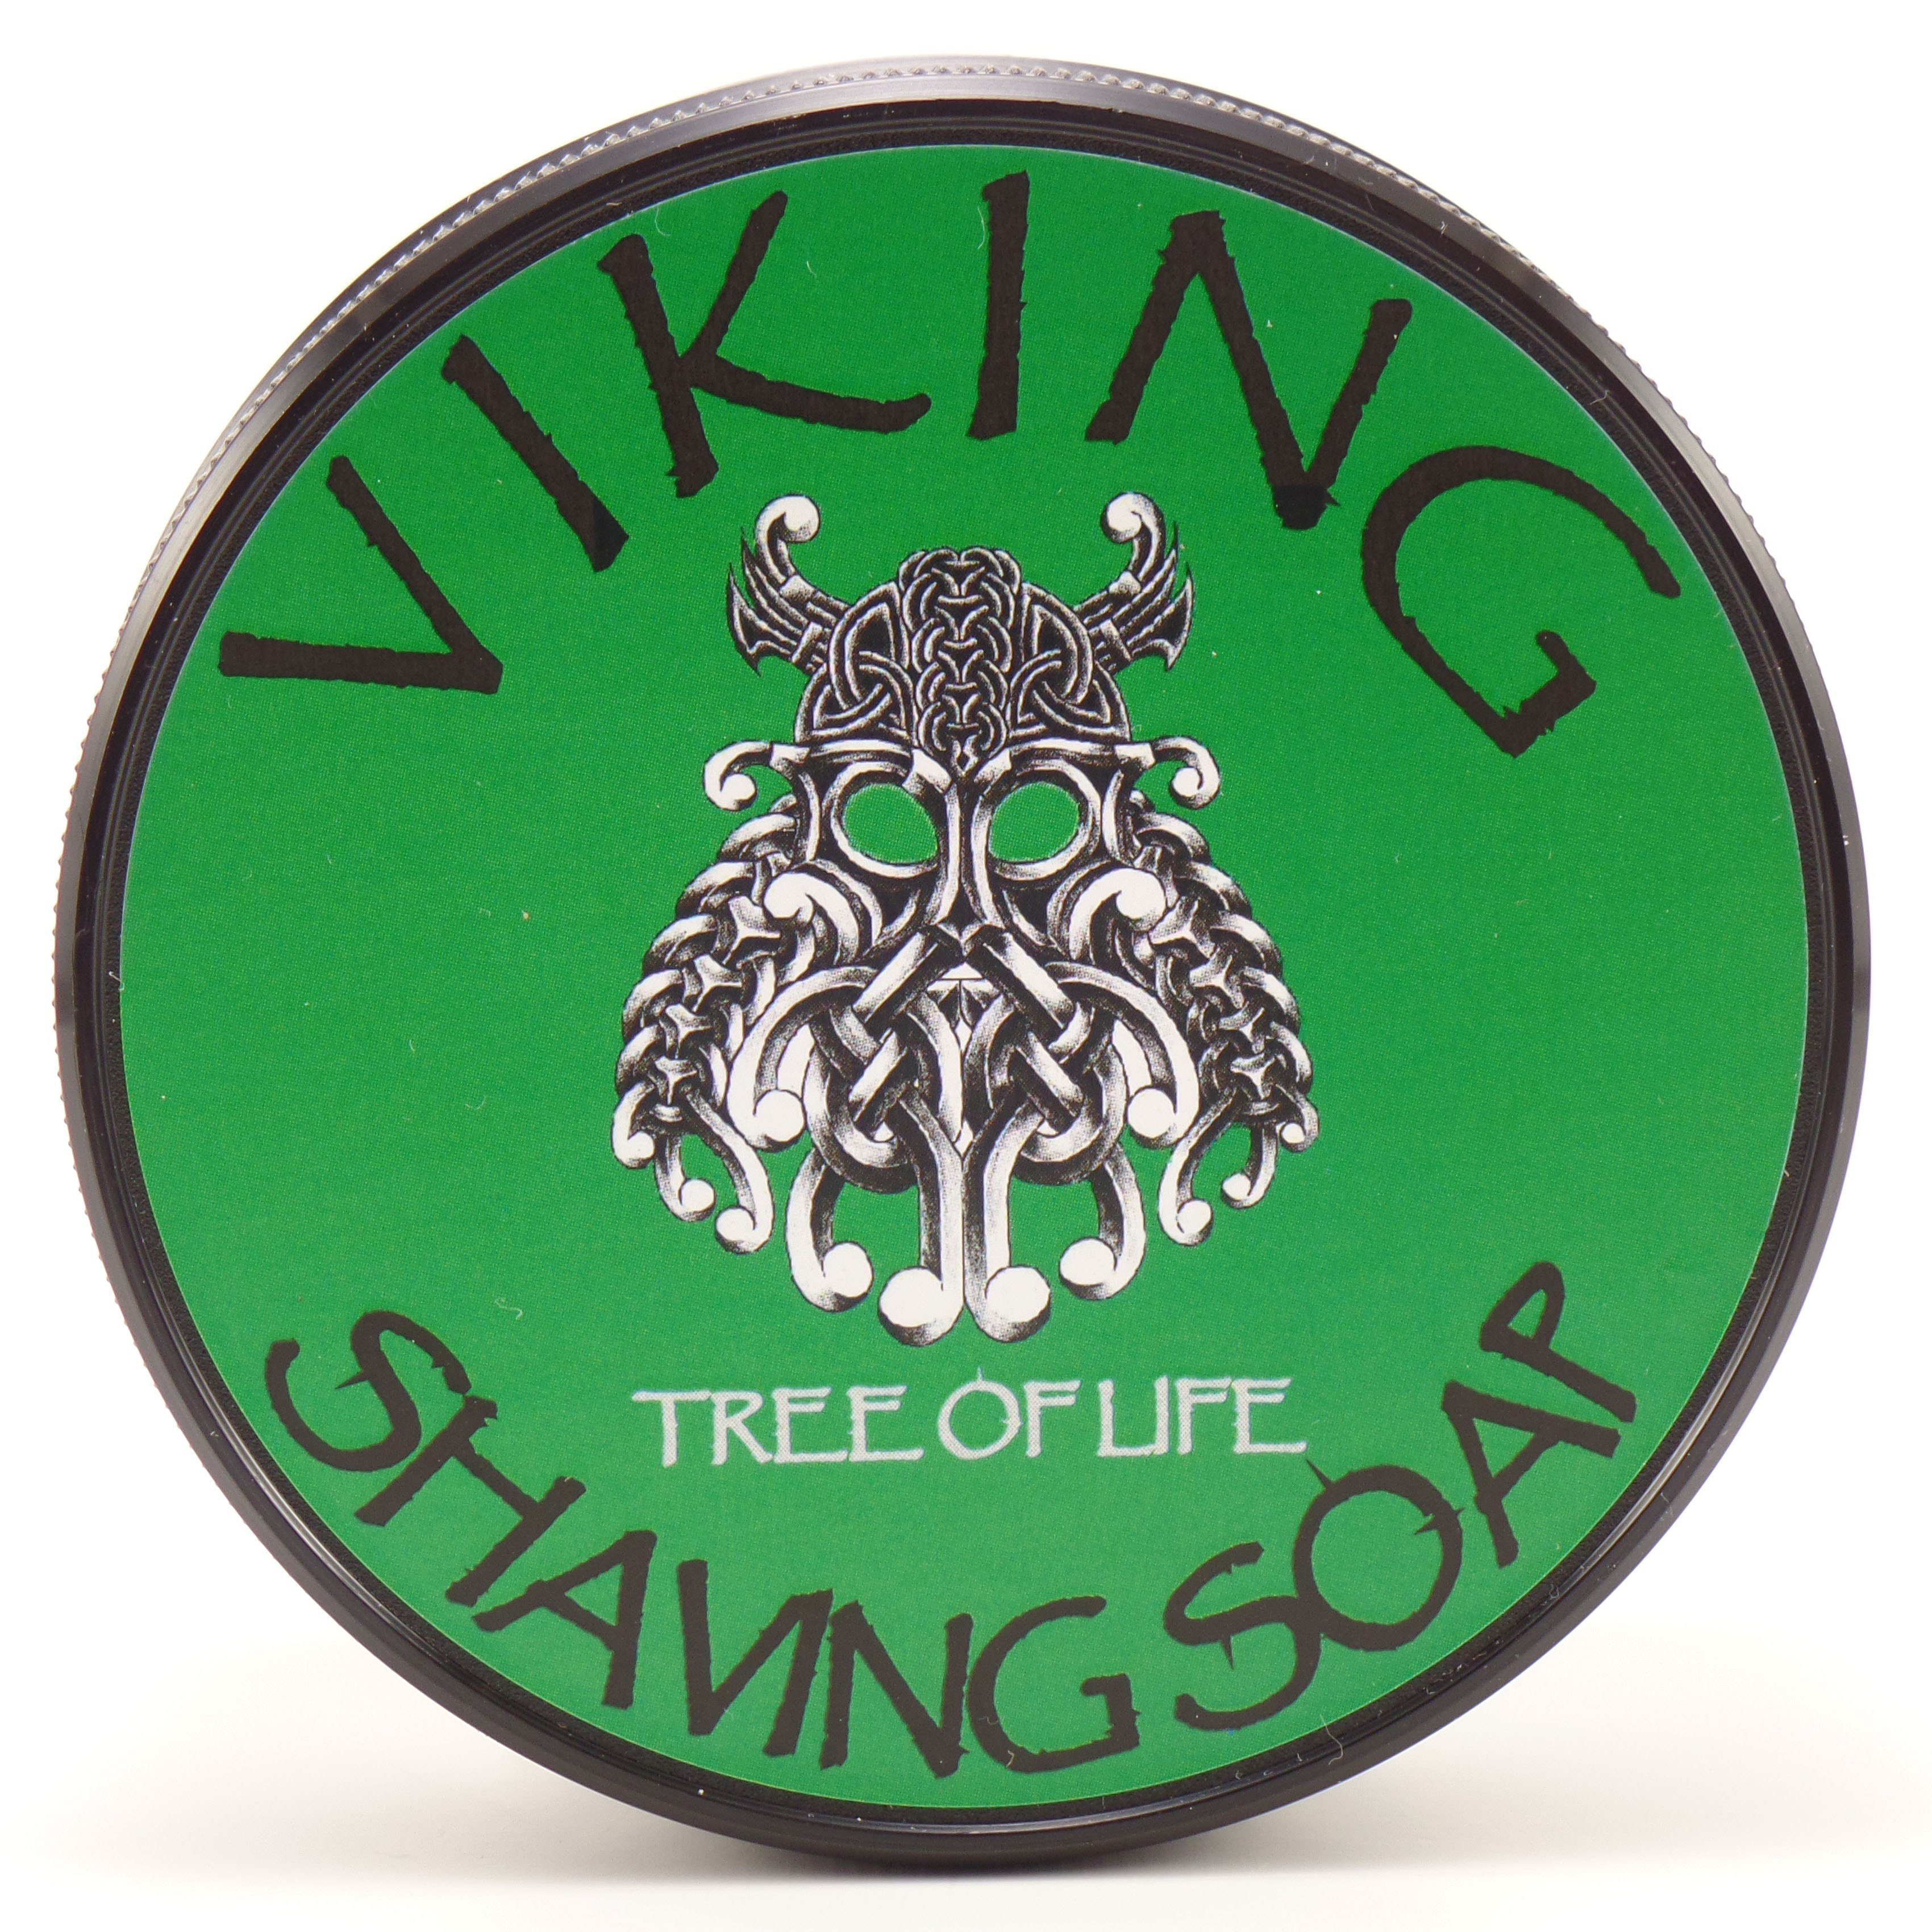 Viking Shaving Soap - Tree of Life - Soap image